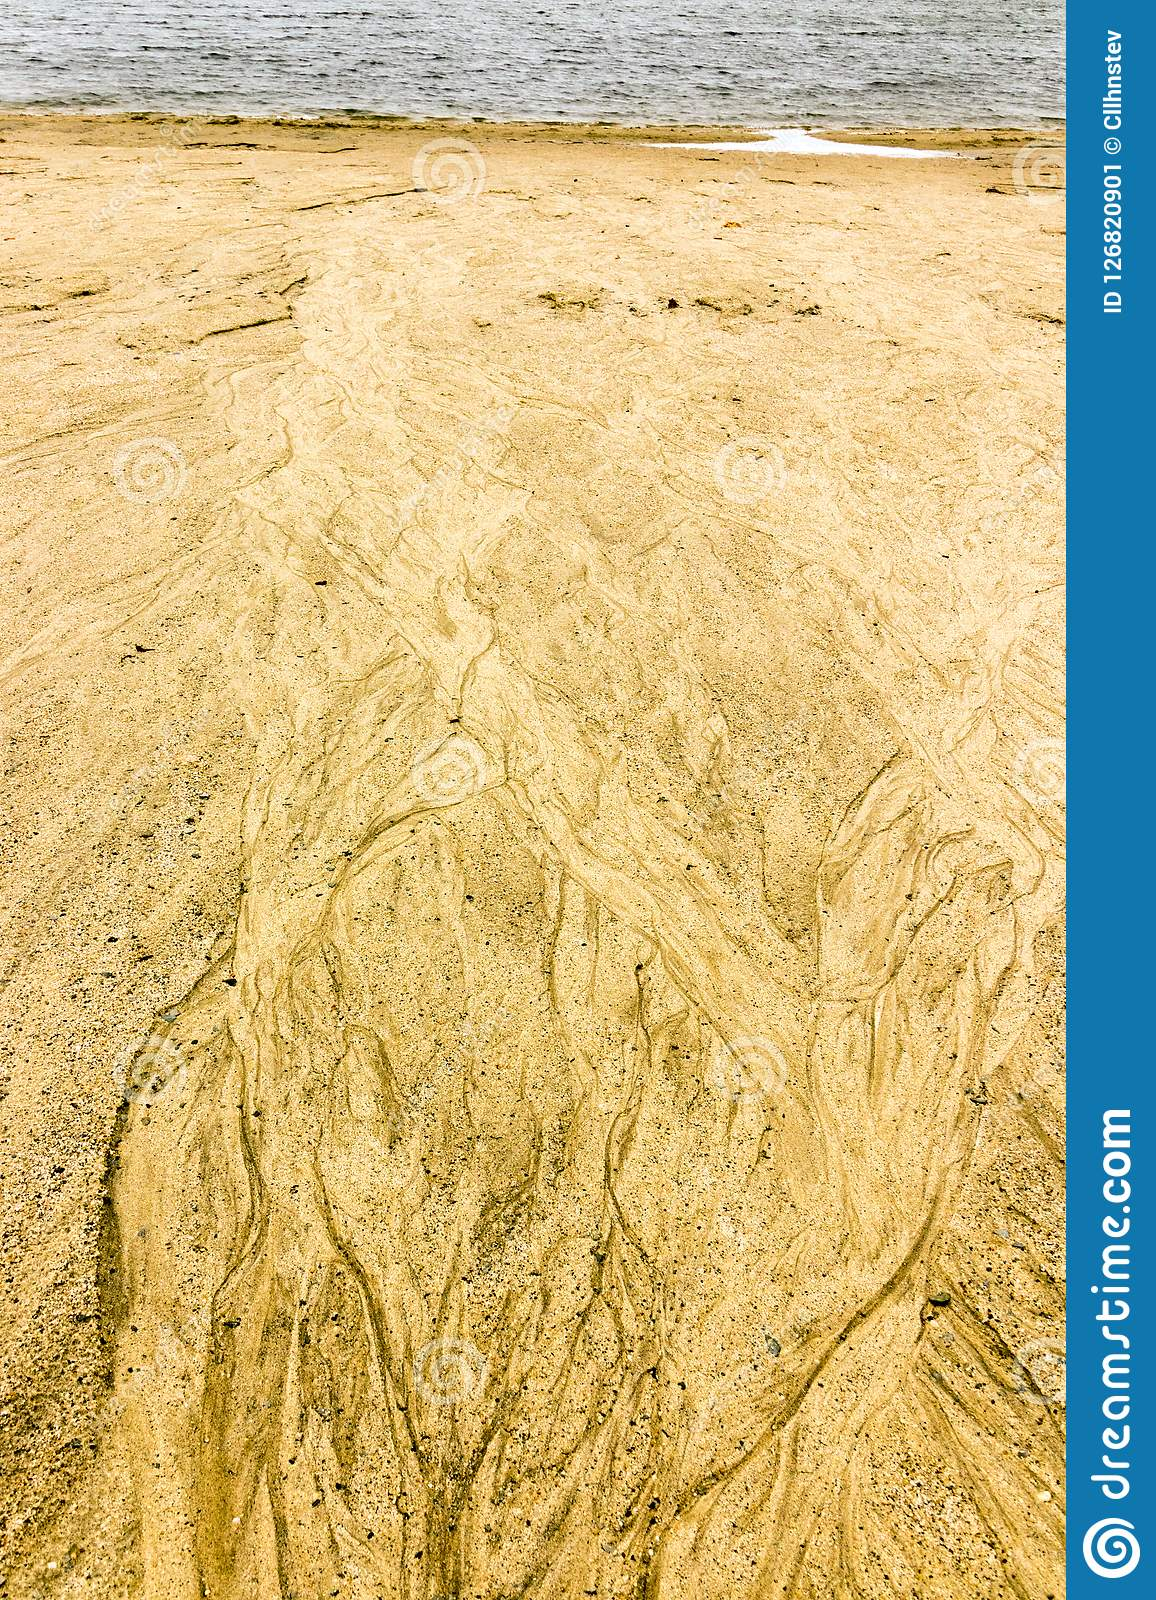 Rivulets in beach sand stock image  Image of streams - 126820901